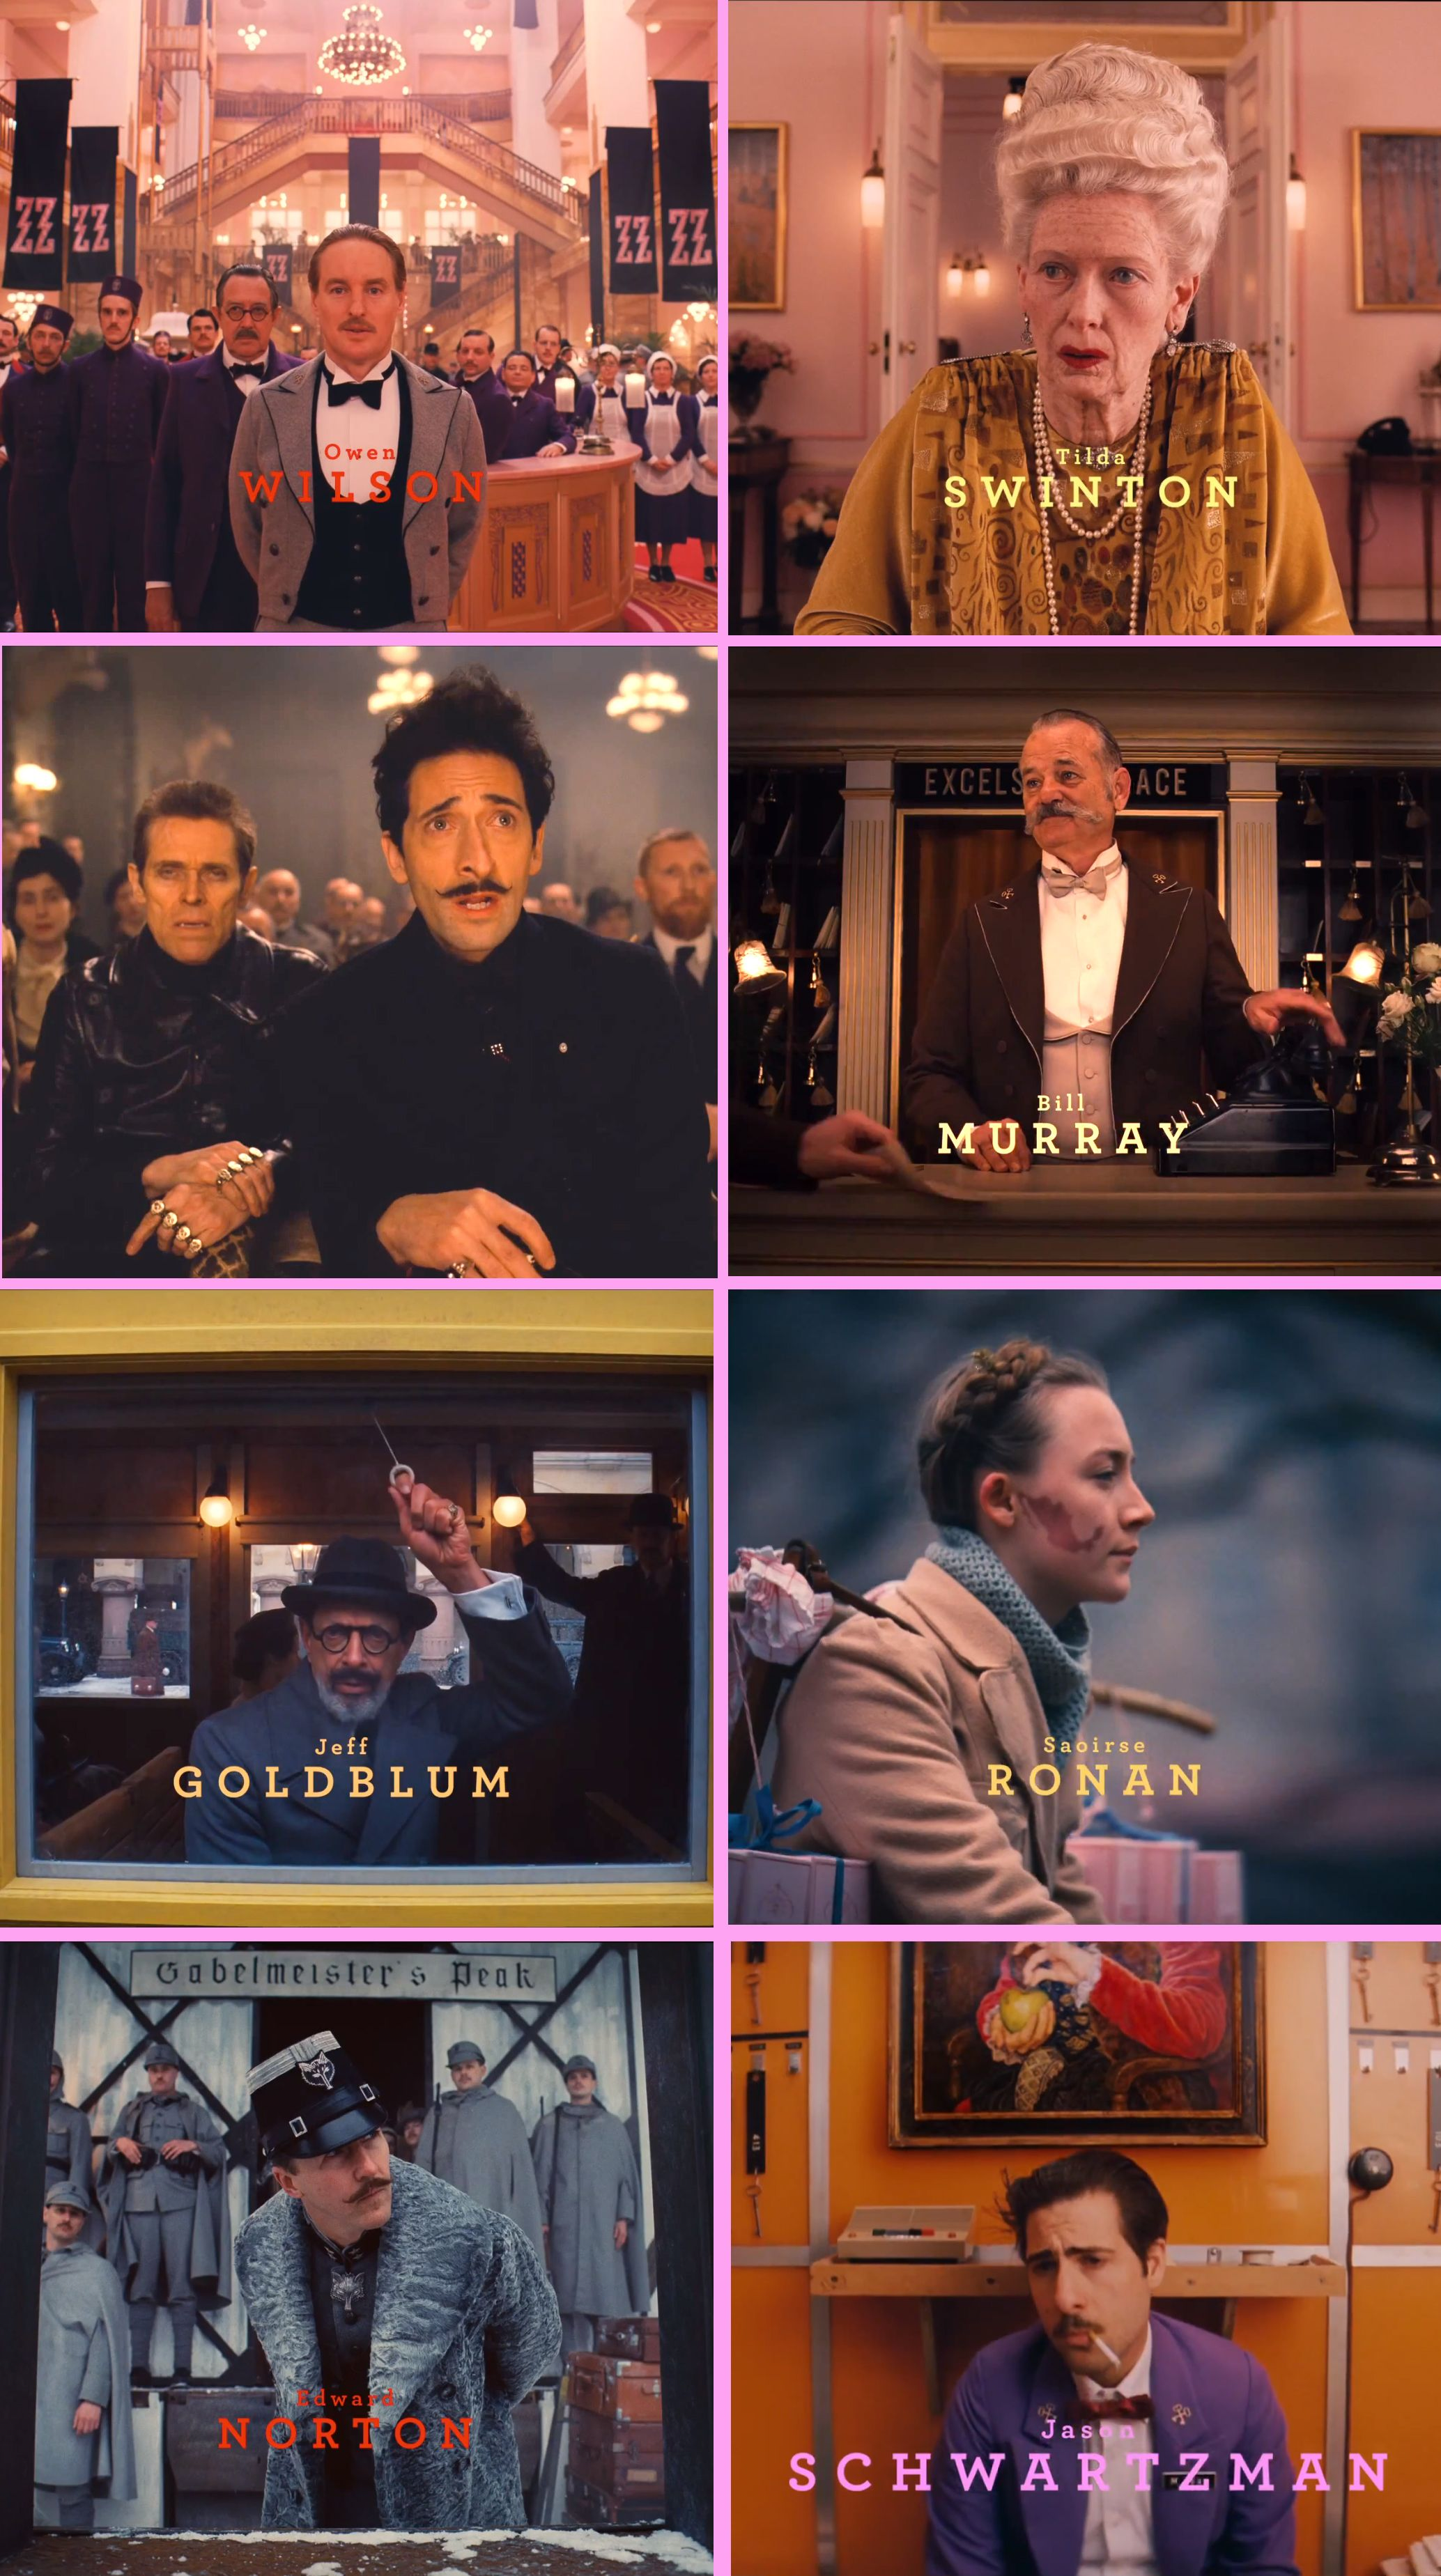 Wes Anderson S The Grand Budapest Hotel 2013 Intro Screenshots